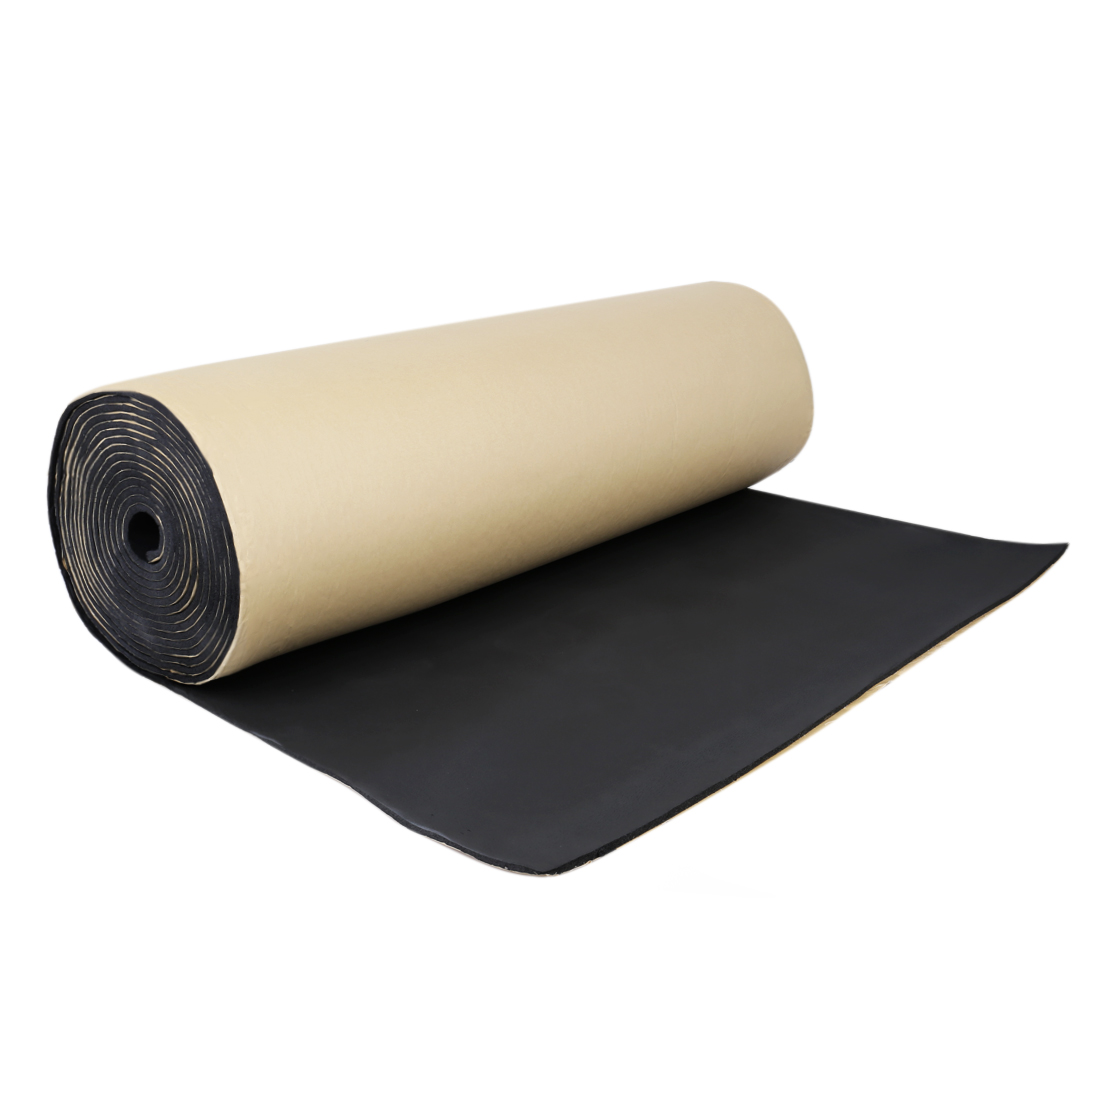 "118mil 16.36sqft Car Heat Insulation Foam Sound Absorption Deadener Mat 60""x 40"""